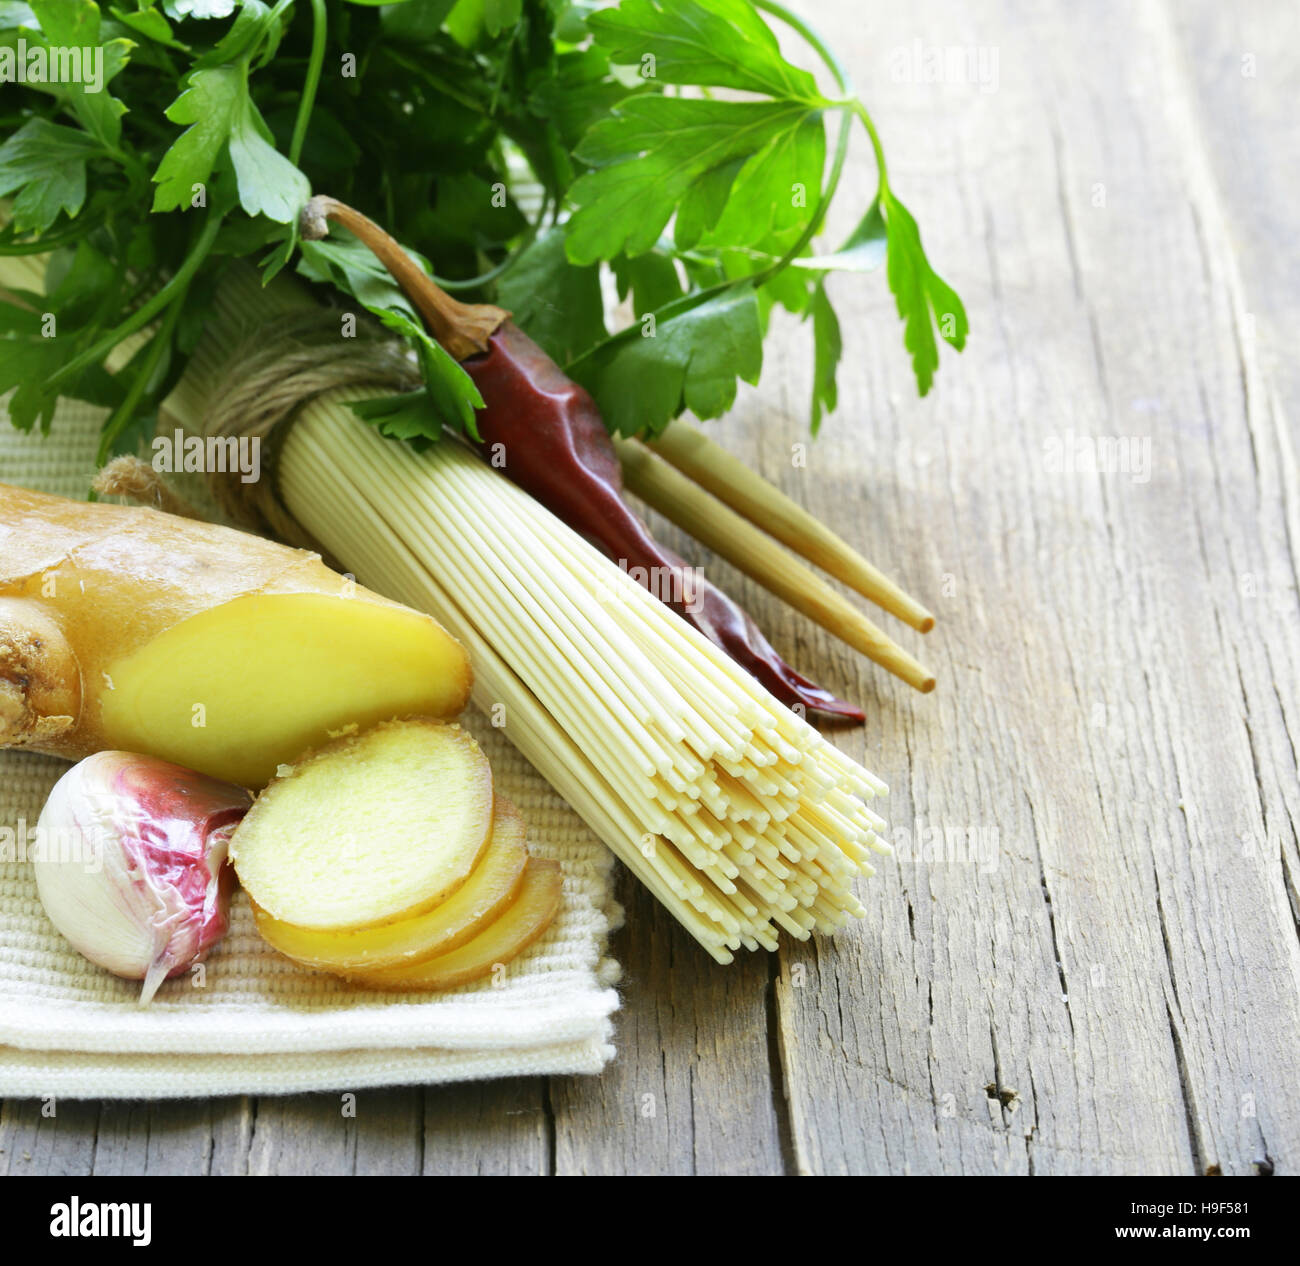 traditional Asian noodles on a wooden table - Stock Image